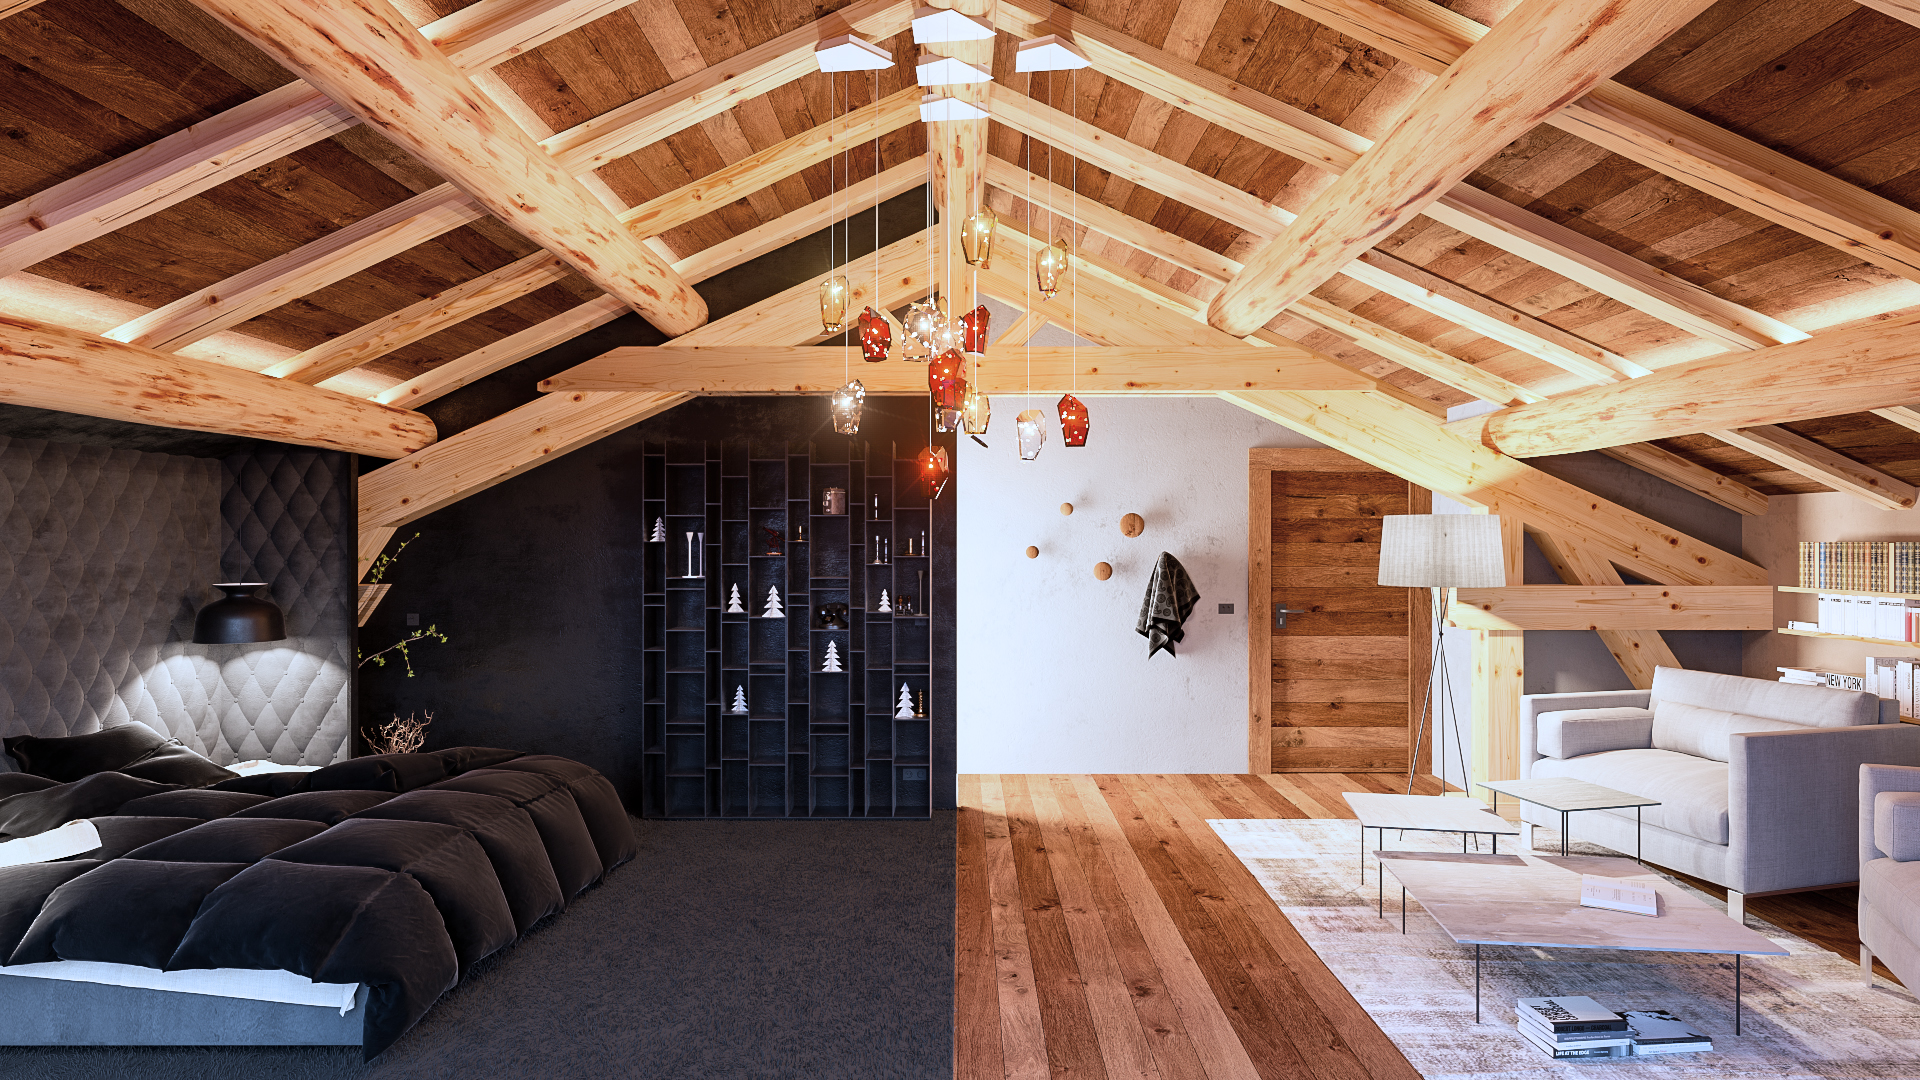 Am nagement int rieur d un chalet dans les alpes 2 for Amenagement interieur chalet